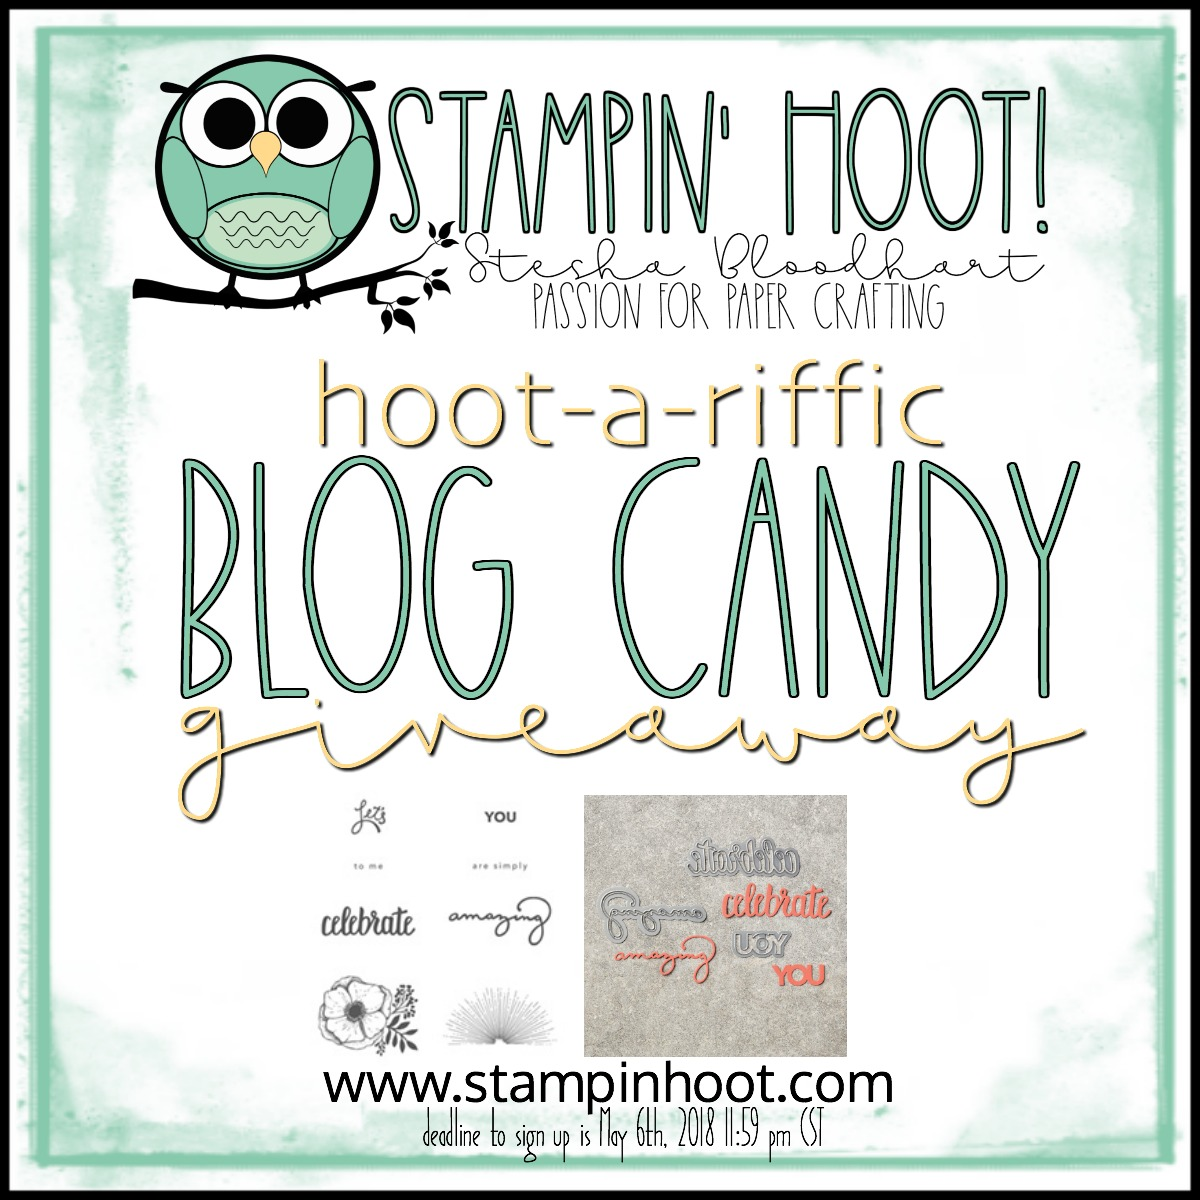 Hoot-a-Riffic Blog Candy Giveaway - Amazing You Stamp Set and Celebrate You Thinlits Dies by Stampin' Up! Deadline to Sign Up May 6th, 2018 11:59 PM CST #steshabloodhart #stampinhoot